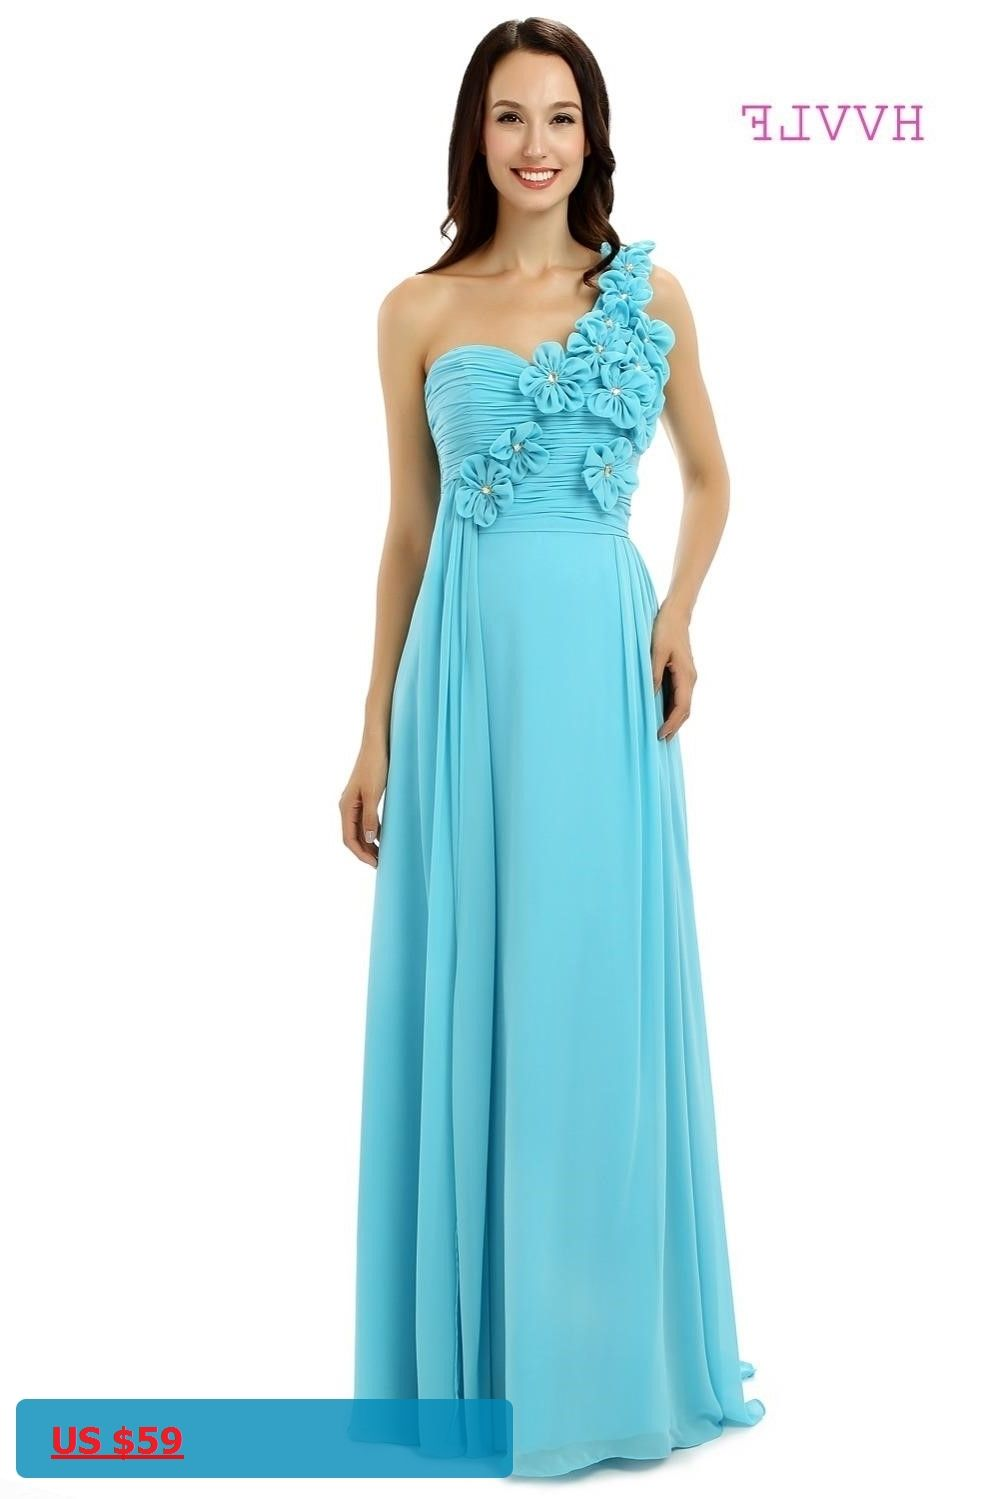 Turquoise 2018 cheap bridesmaid dresses under 50 a line one shoulder turquoise 2018 cheap bridesmaid dresses under 50 a line one shoulder floor length chiffon ombrellifo Choice Image